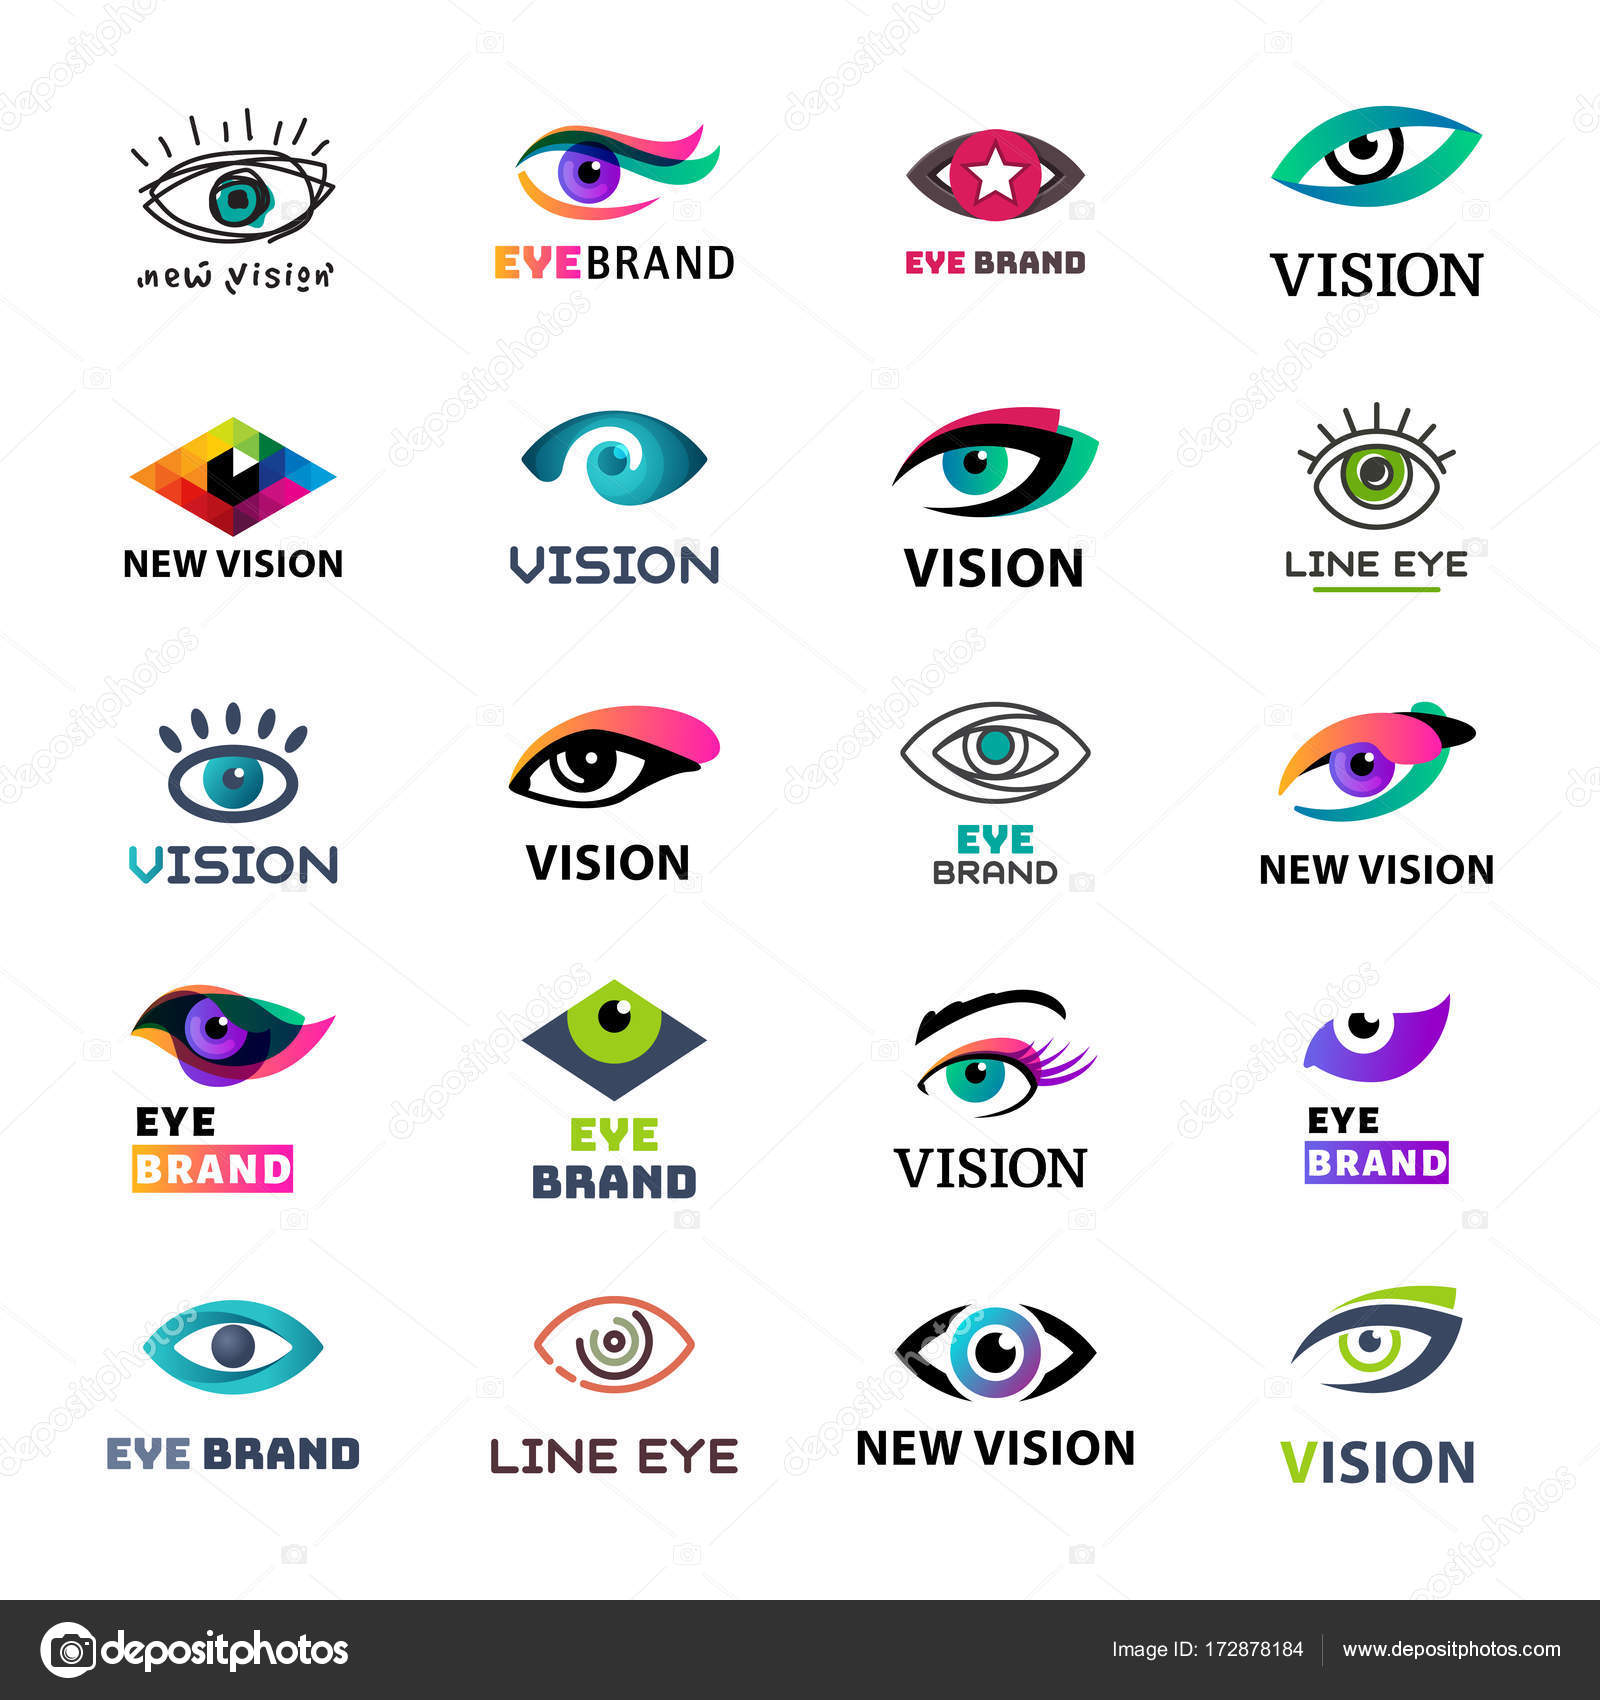 eye blinker business icon glimmer template logo idea startup light